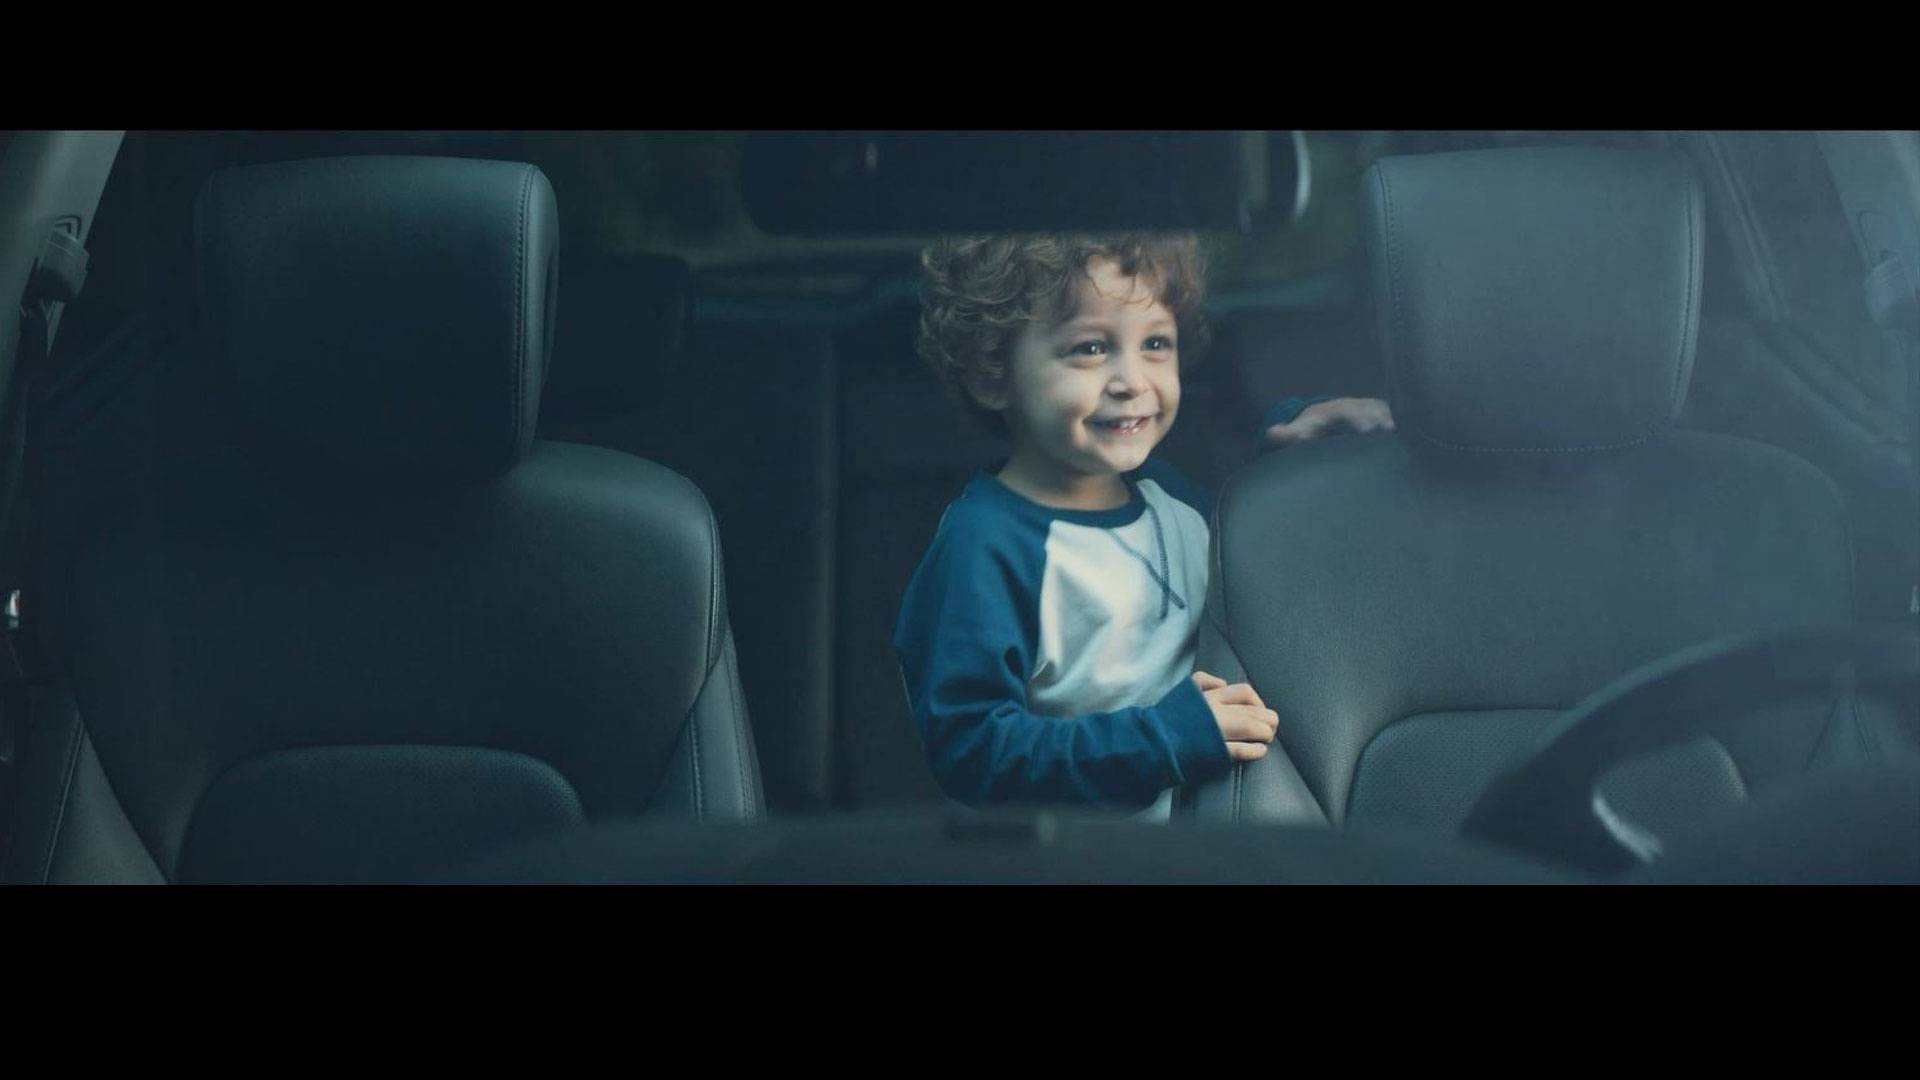 Hyundai Develops Rear Seat Alert To Prevent Child Heat Deaths